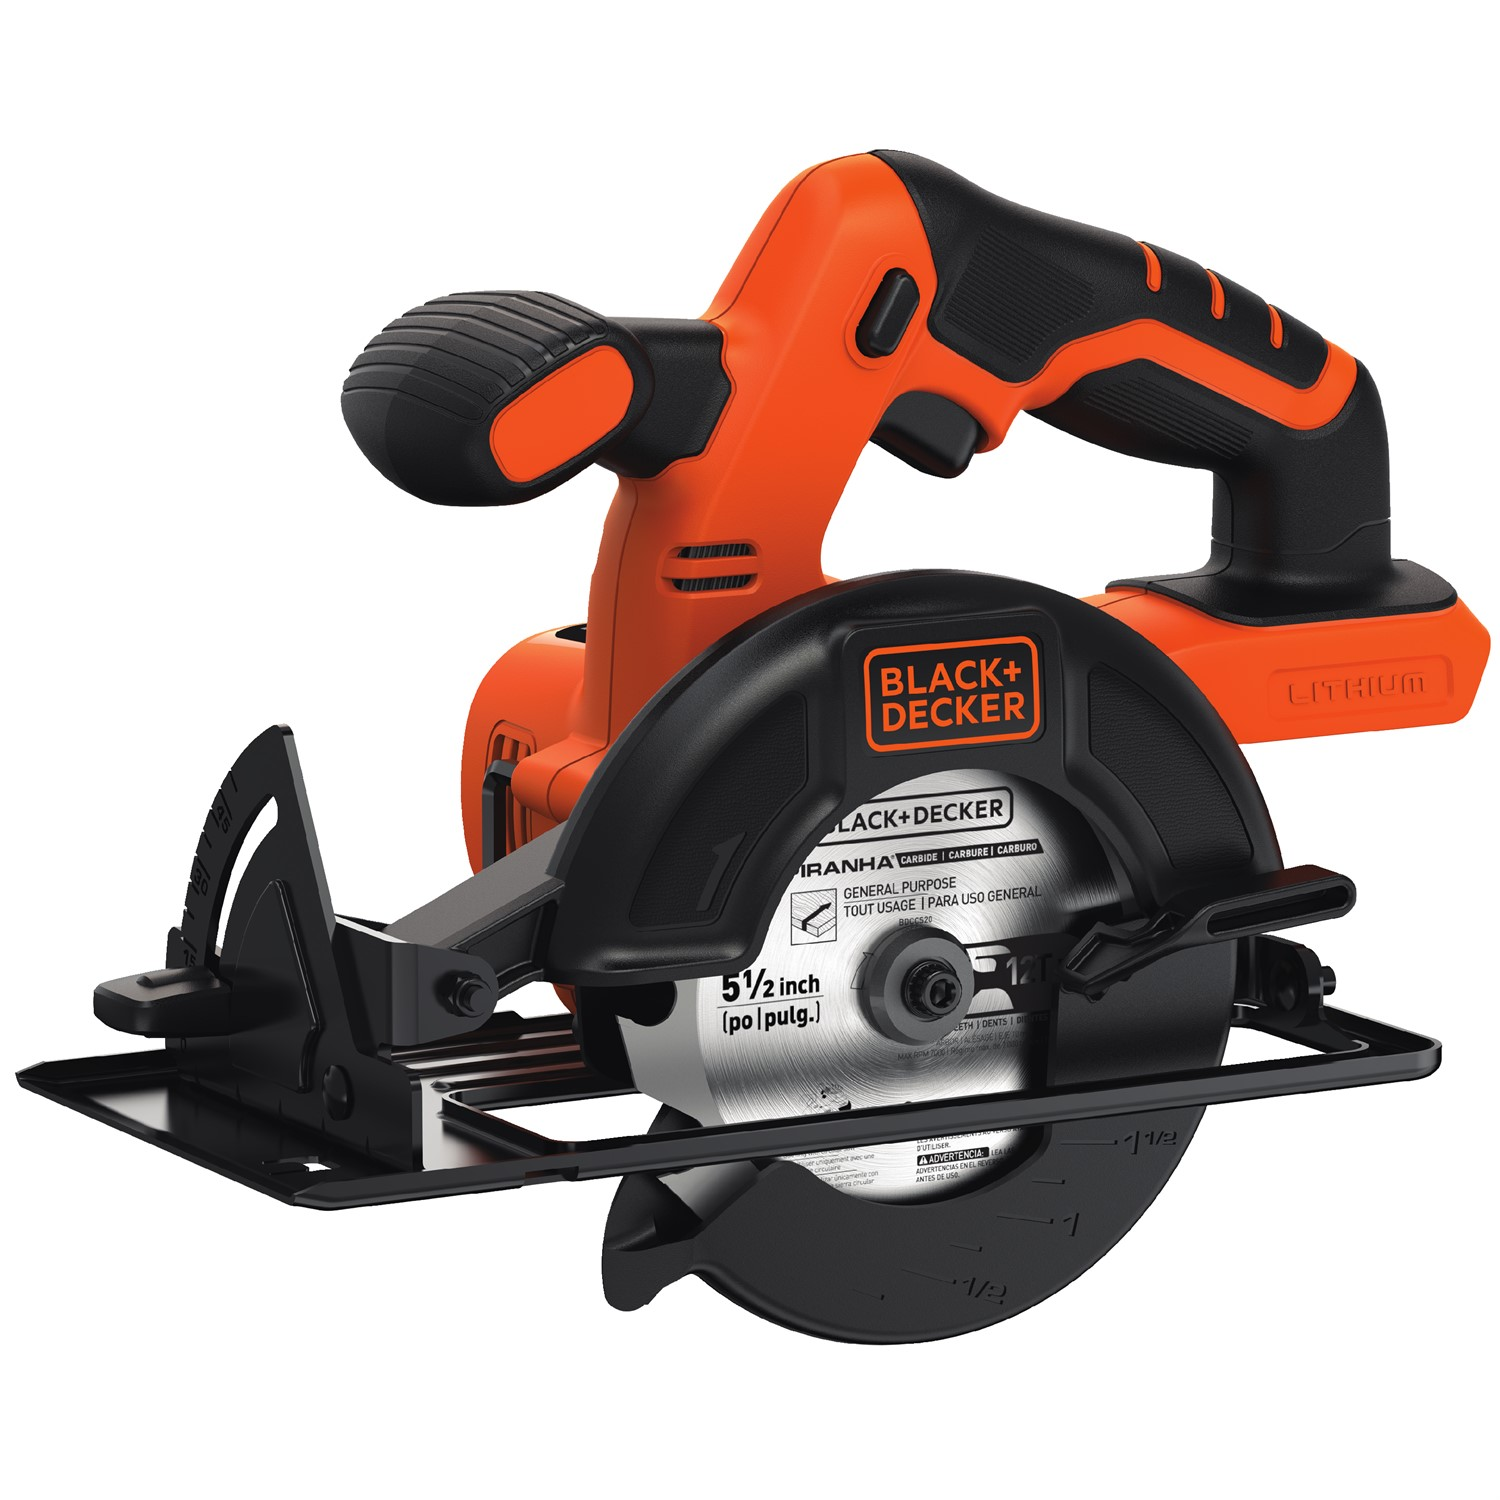 BLACK+DECKER BDCCS20B 20-Volt Max Lithium-Ion Cordless 5-1/2 in. Circular Saw, Bare Tool (No Battery Included)